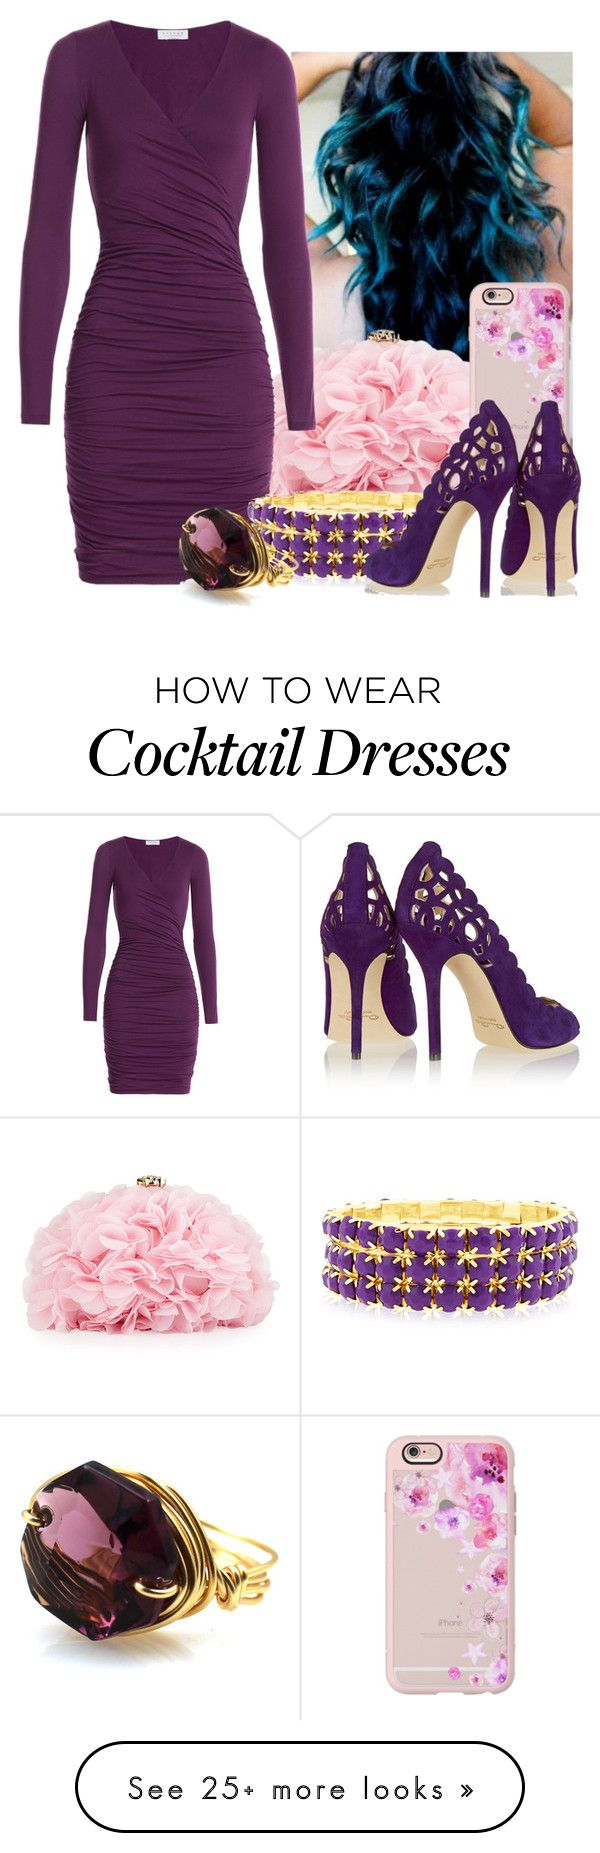 """<3<3<3"" by maiiira-nair on Polyvore featuring Betsey Johnson, Velvet, Casetify and Oscar de la Renta"